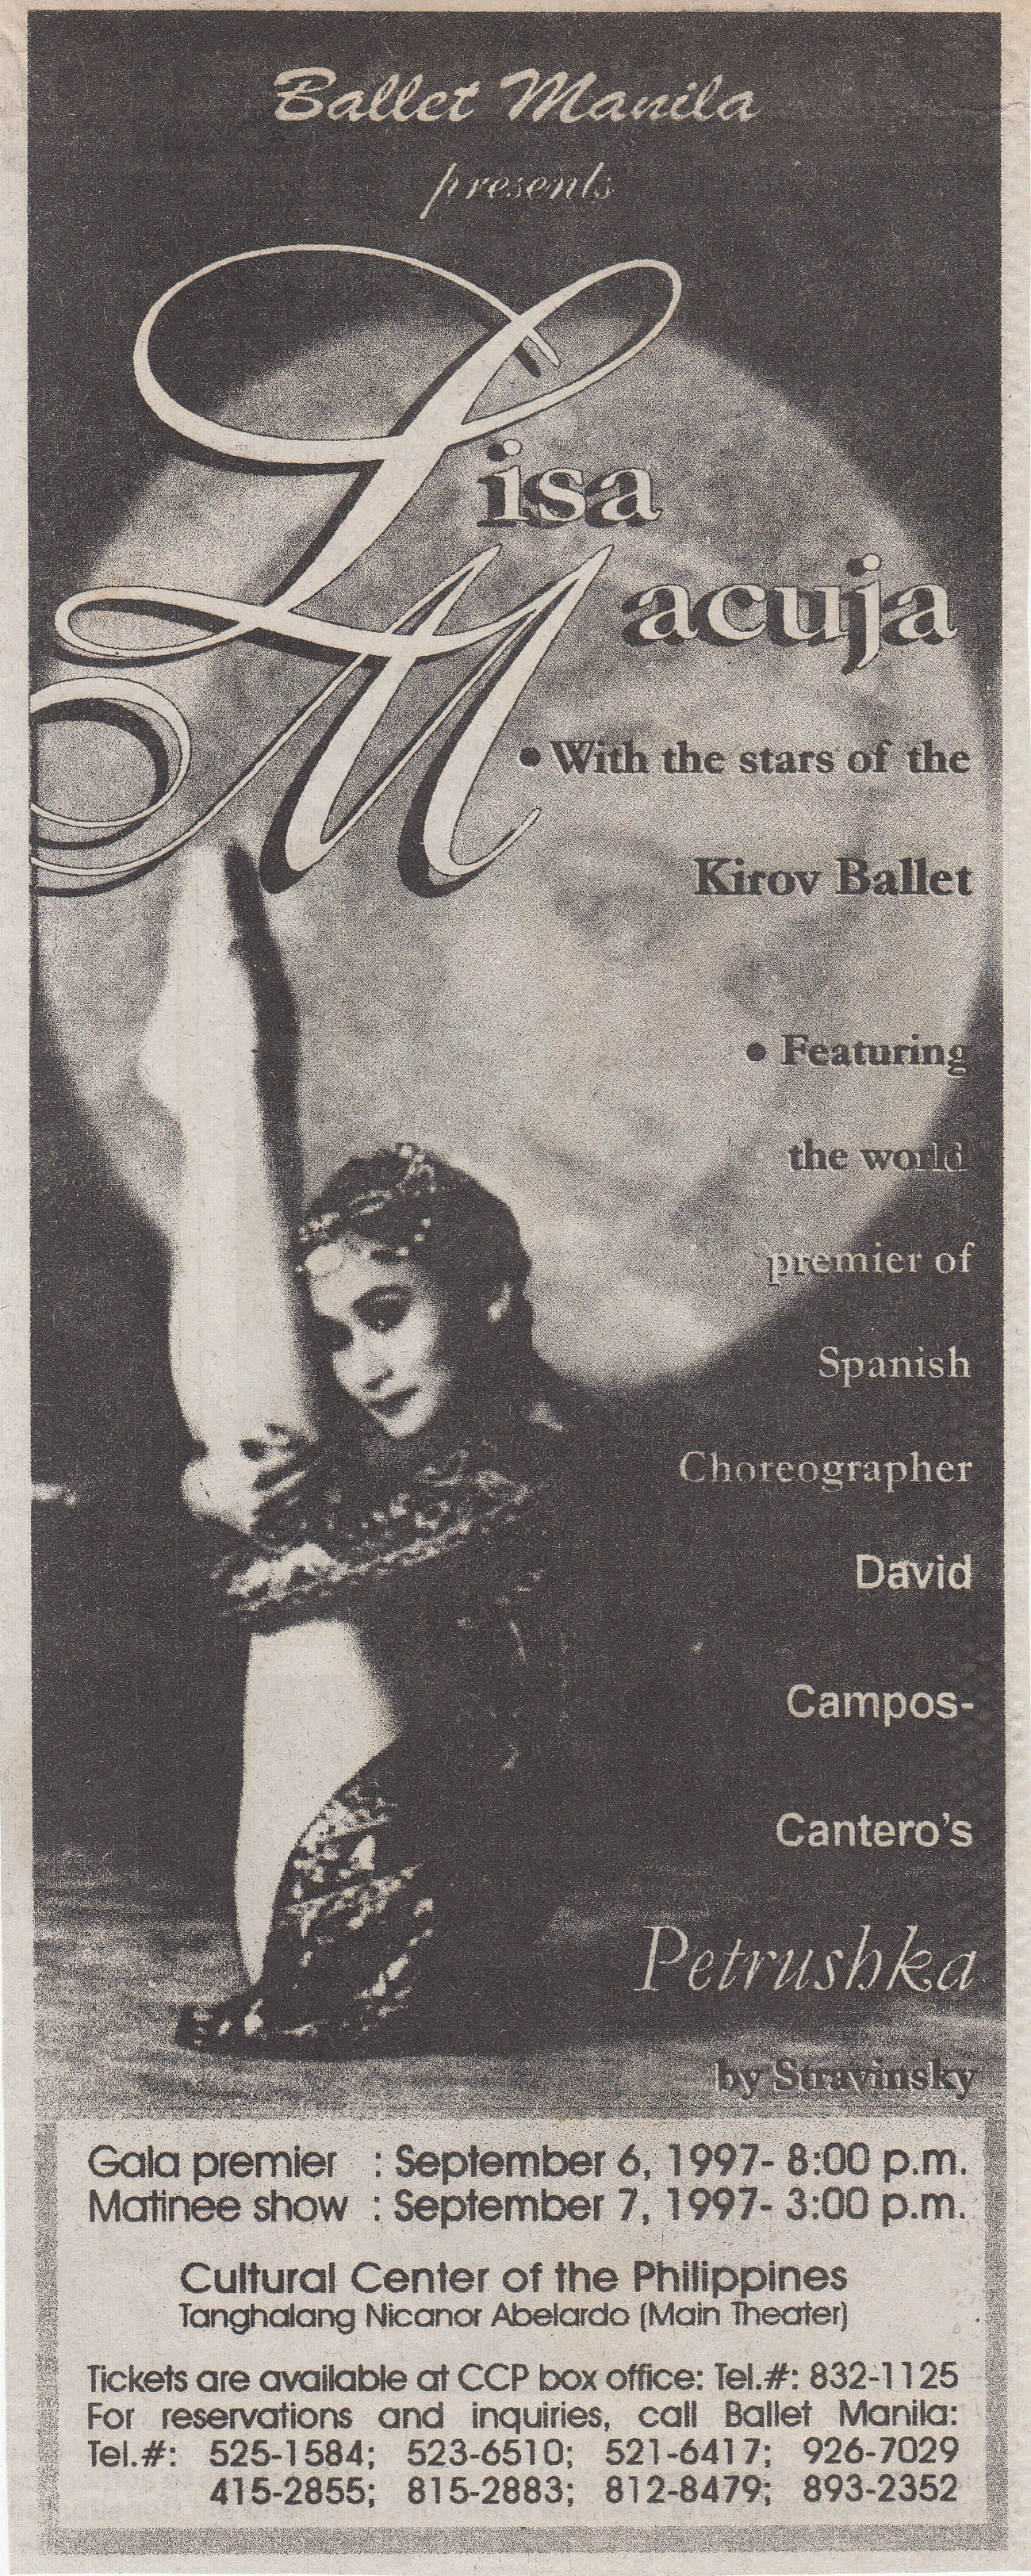 A newspaper advertisement for Ballet Manila's two-night show at the Cultural Center of the Philippines. Clipping from the Ballet Manila Archives collection